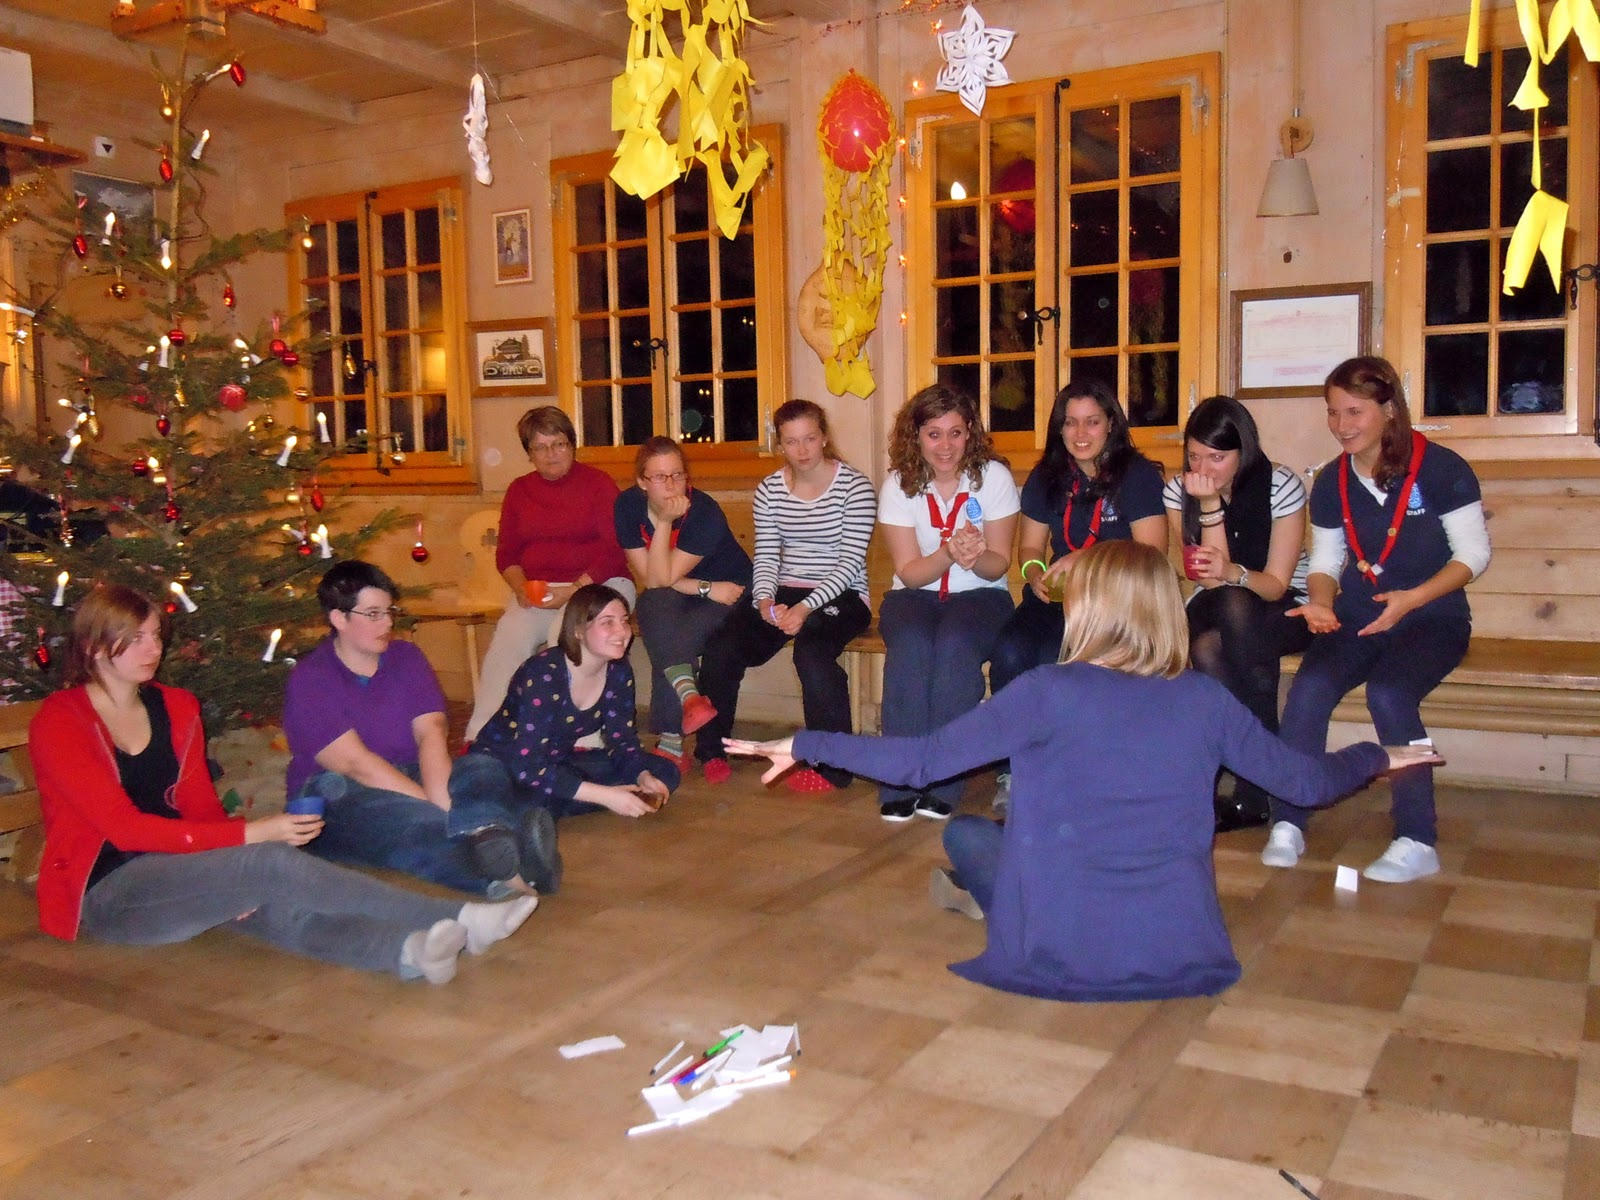 To europe with kids the program at our chalet - The dancing chalet ...